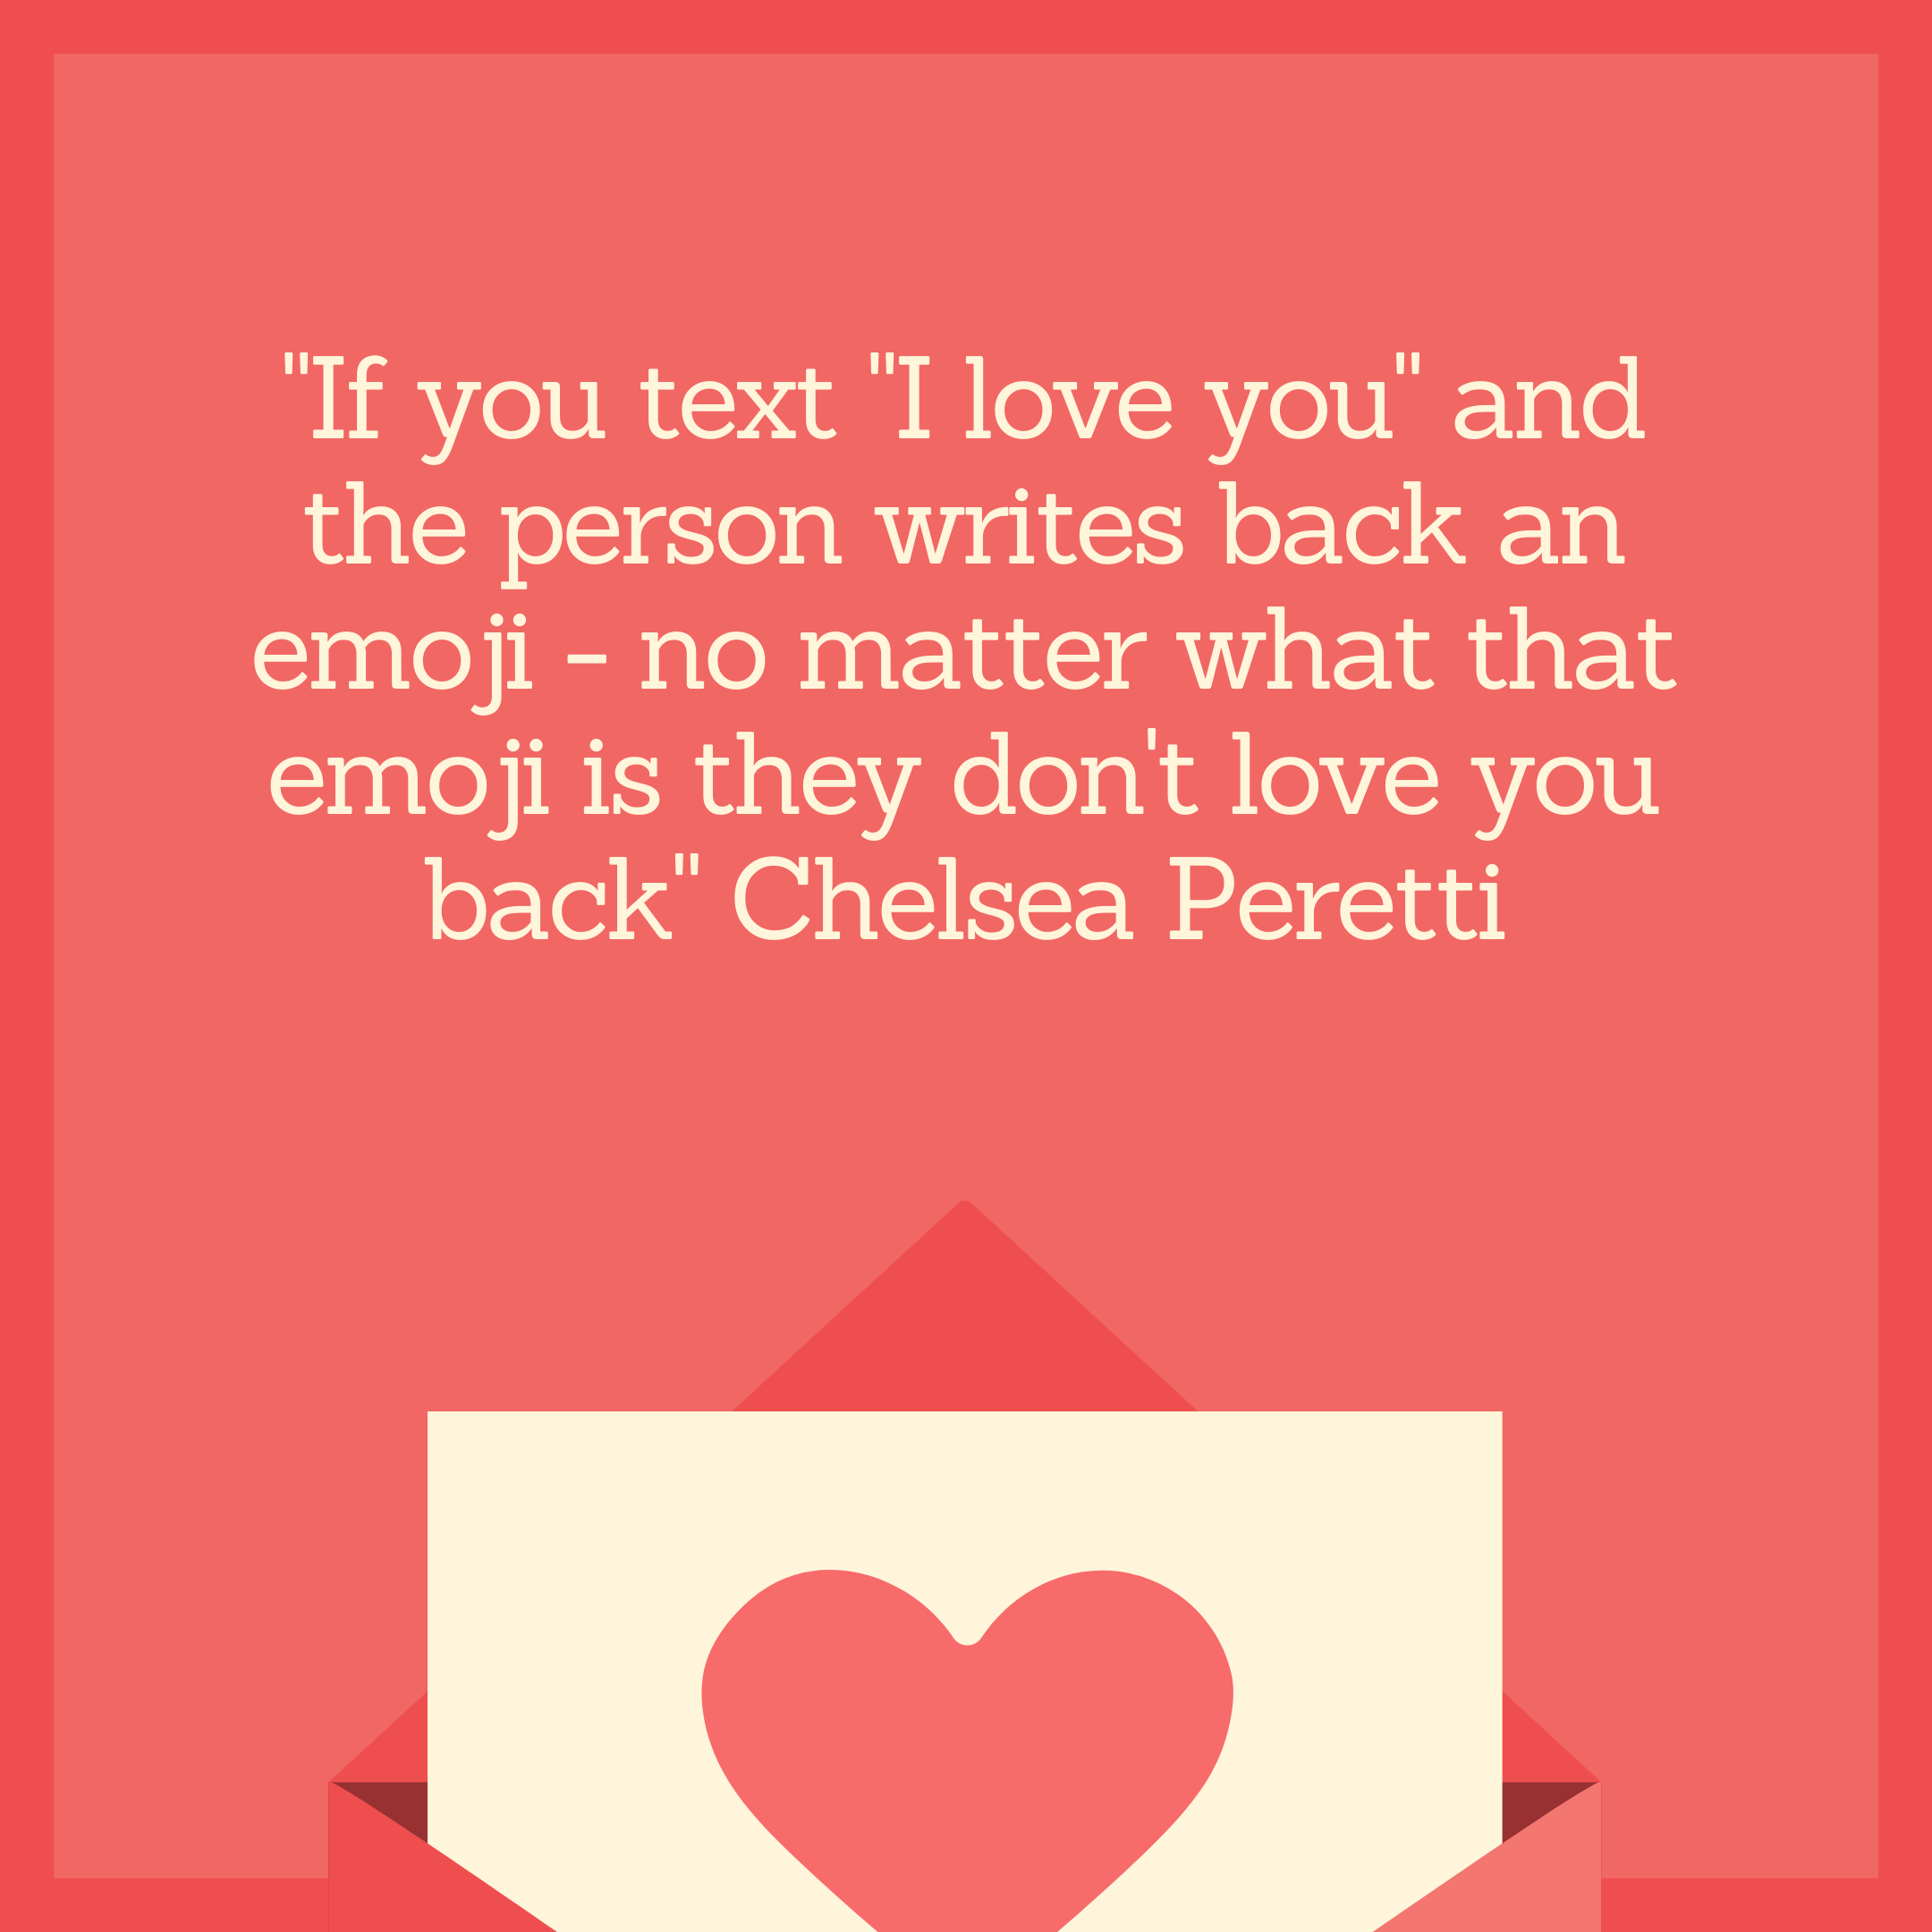 """If you text ""I love you"" and the person writes back an emoji - no matter what that emoji is they don't love you back"" Chelsea Peretti"